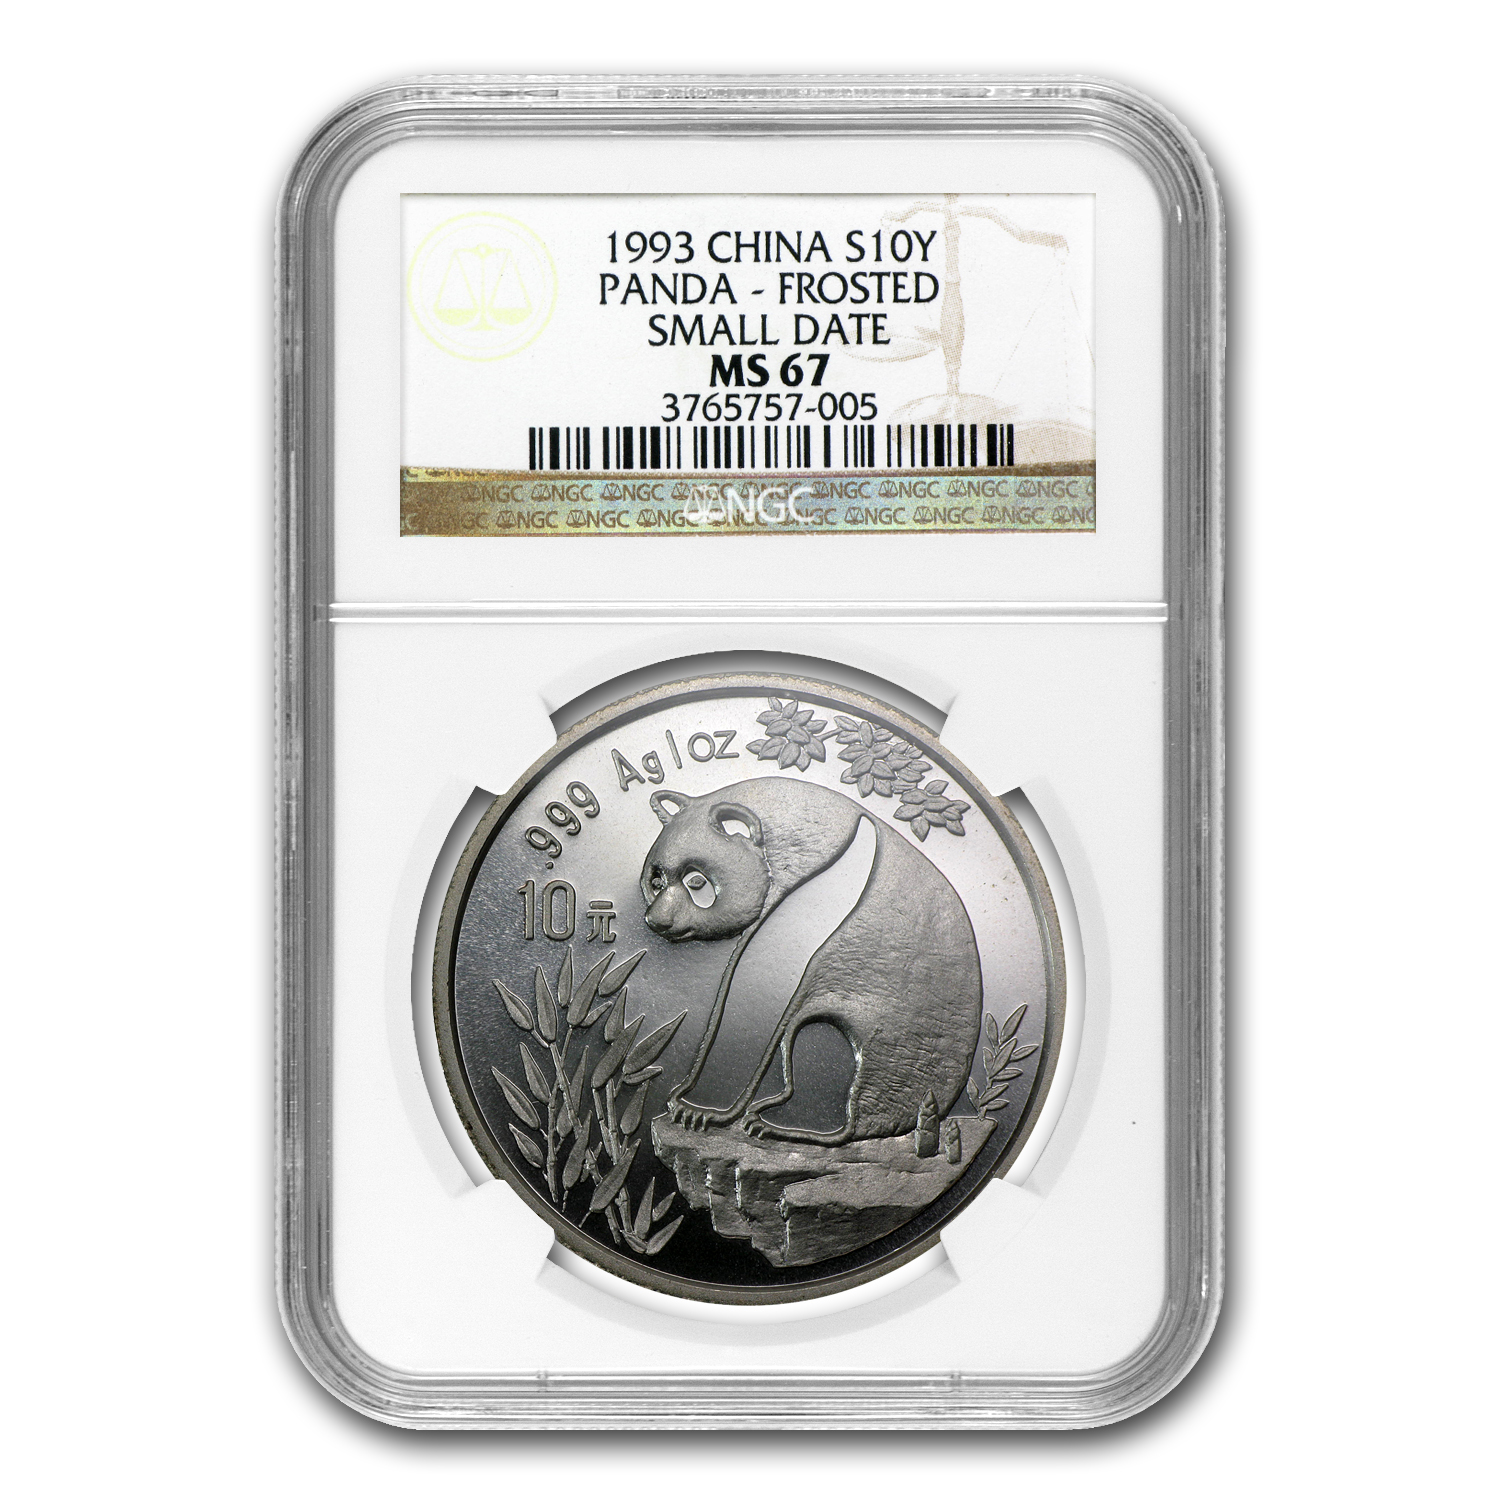 1993 1 oz Silver Chinese Panda MS-67 NGC (Small Date, Frosted)